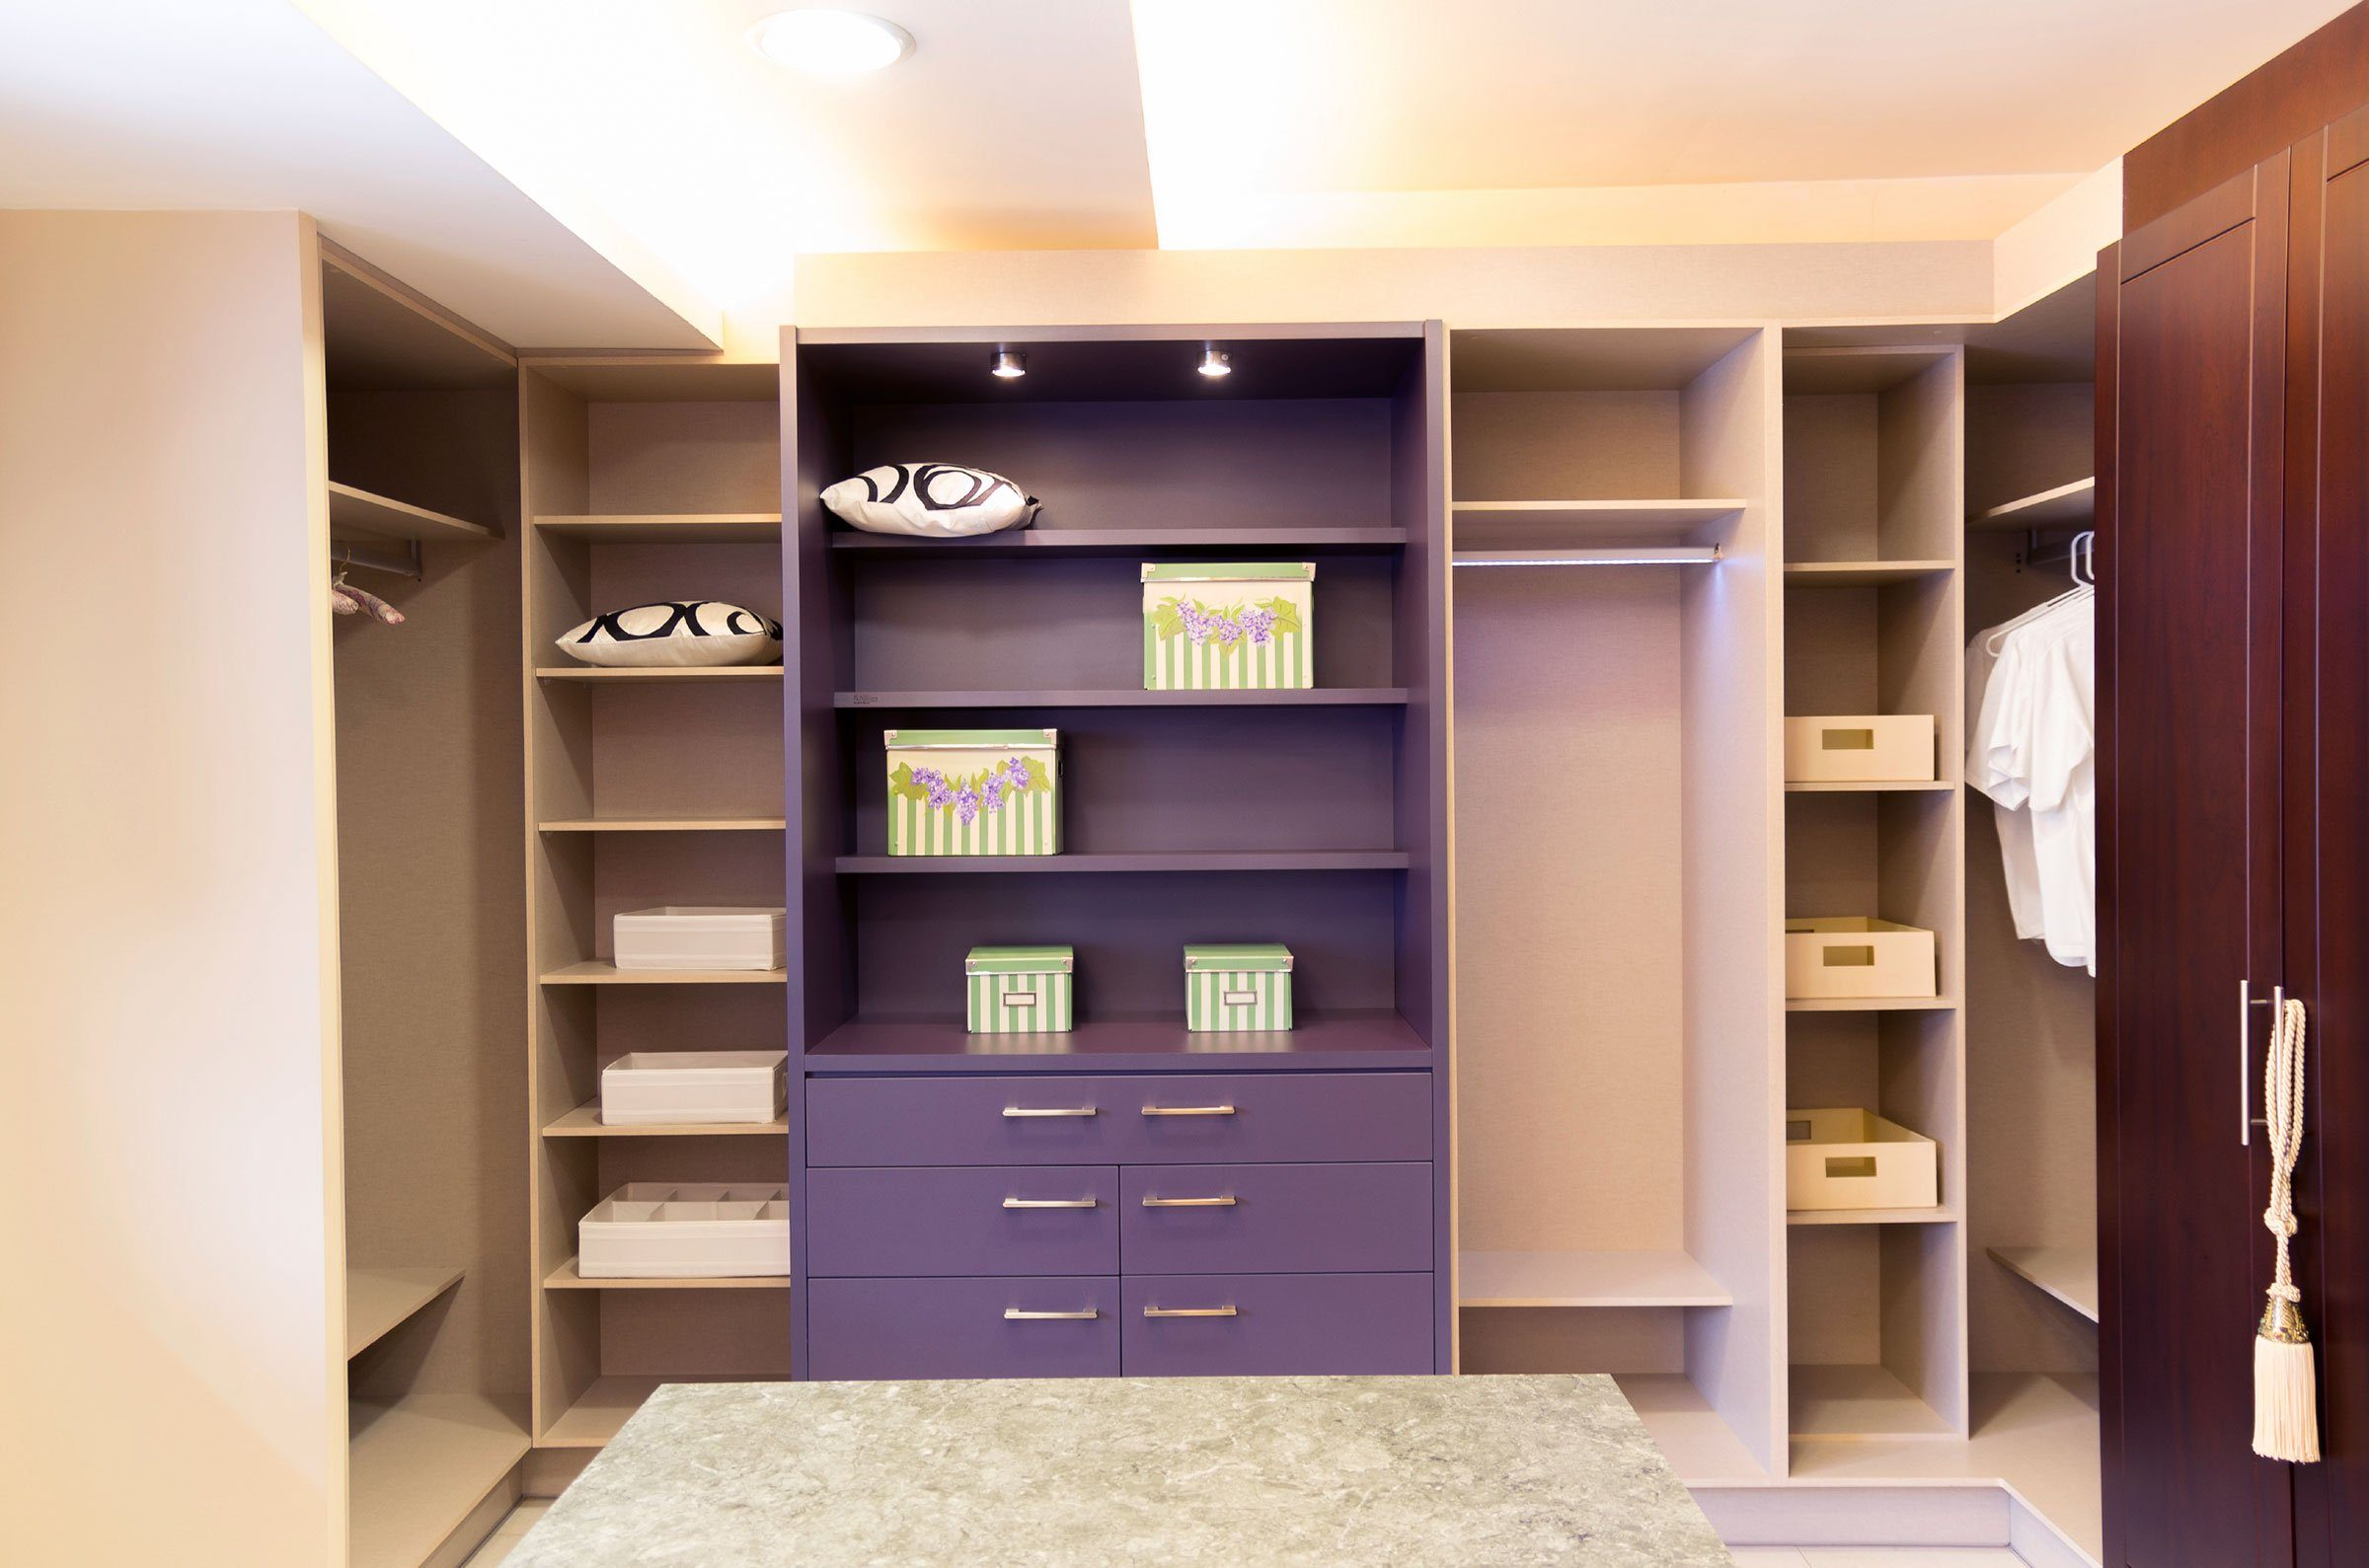 13 things personal organizers wont tell you walk in closet